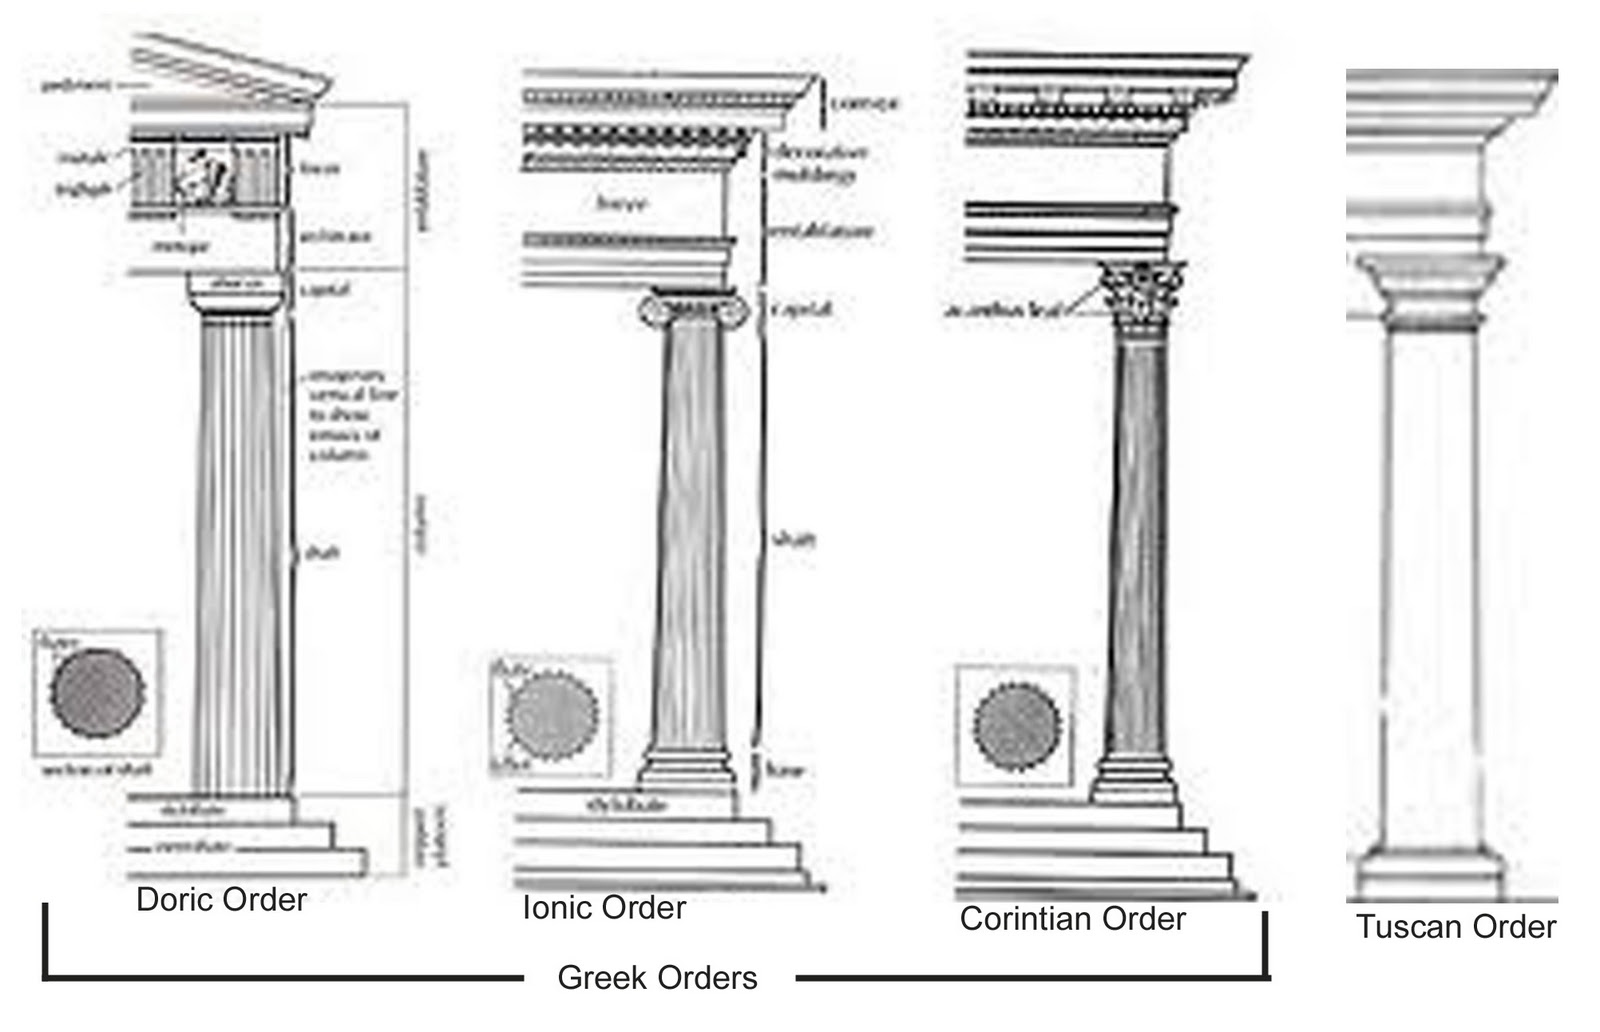 the greek classical perfection ideal revealed Miletus, the southernmost ionian city, was the wealthiest of greek cities and the main focus of the ionian awakening, a name for the initial phase of classical greek civilization, coincidental with the birth of greek philosophy.